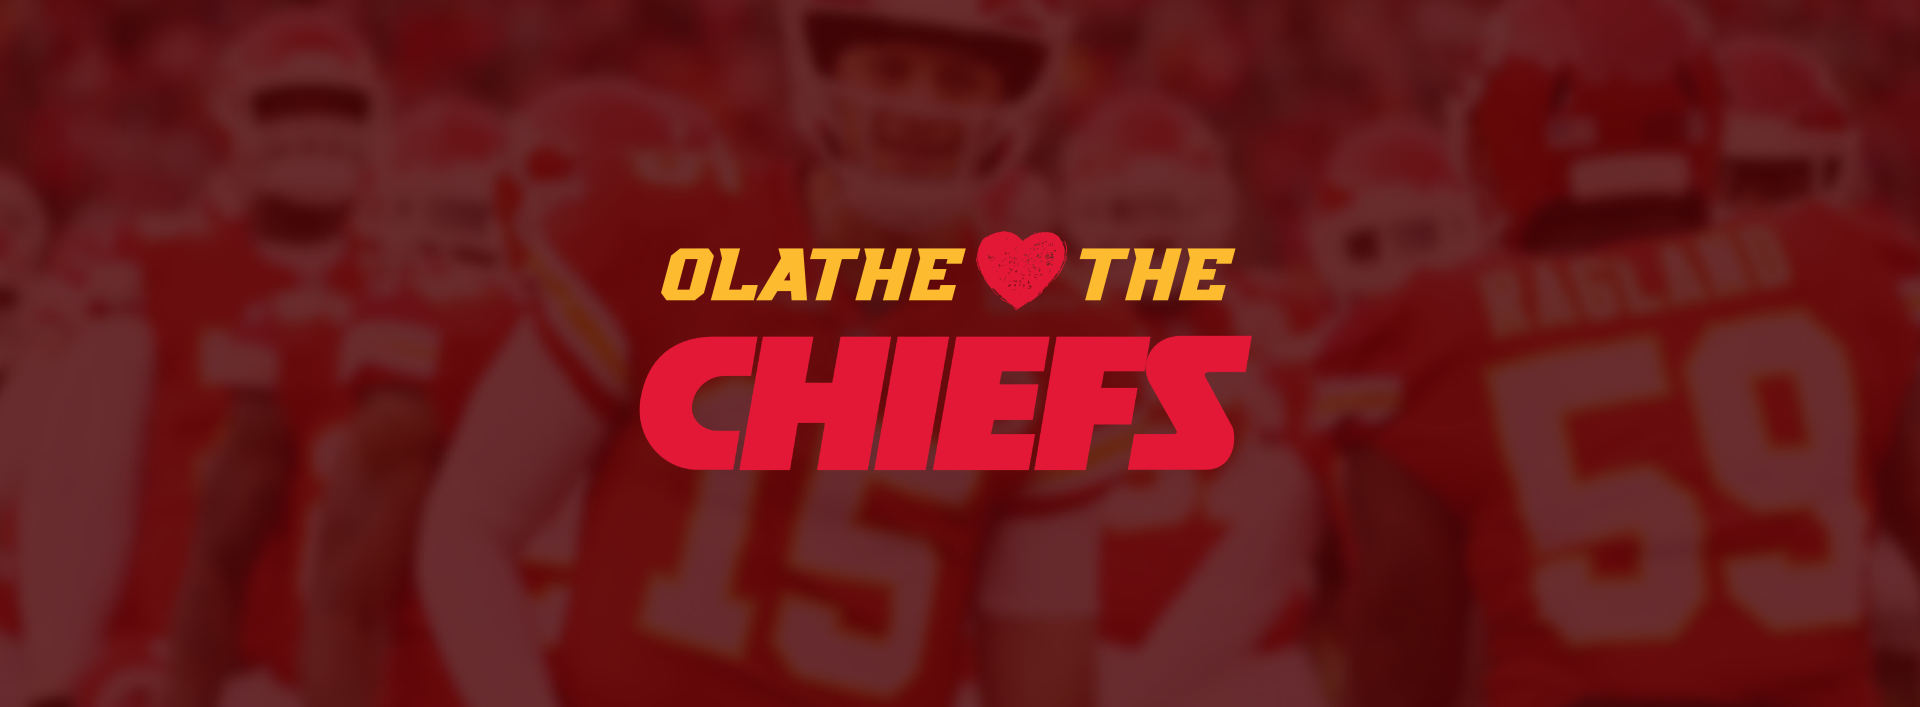 Olathe loves The Chiefs with blurred images of Chiefs players in the background